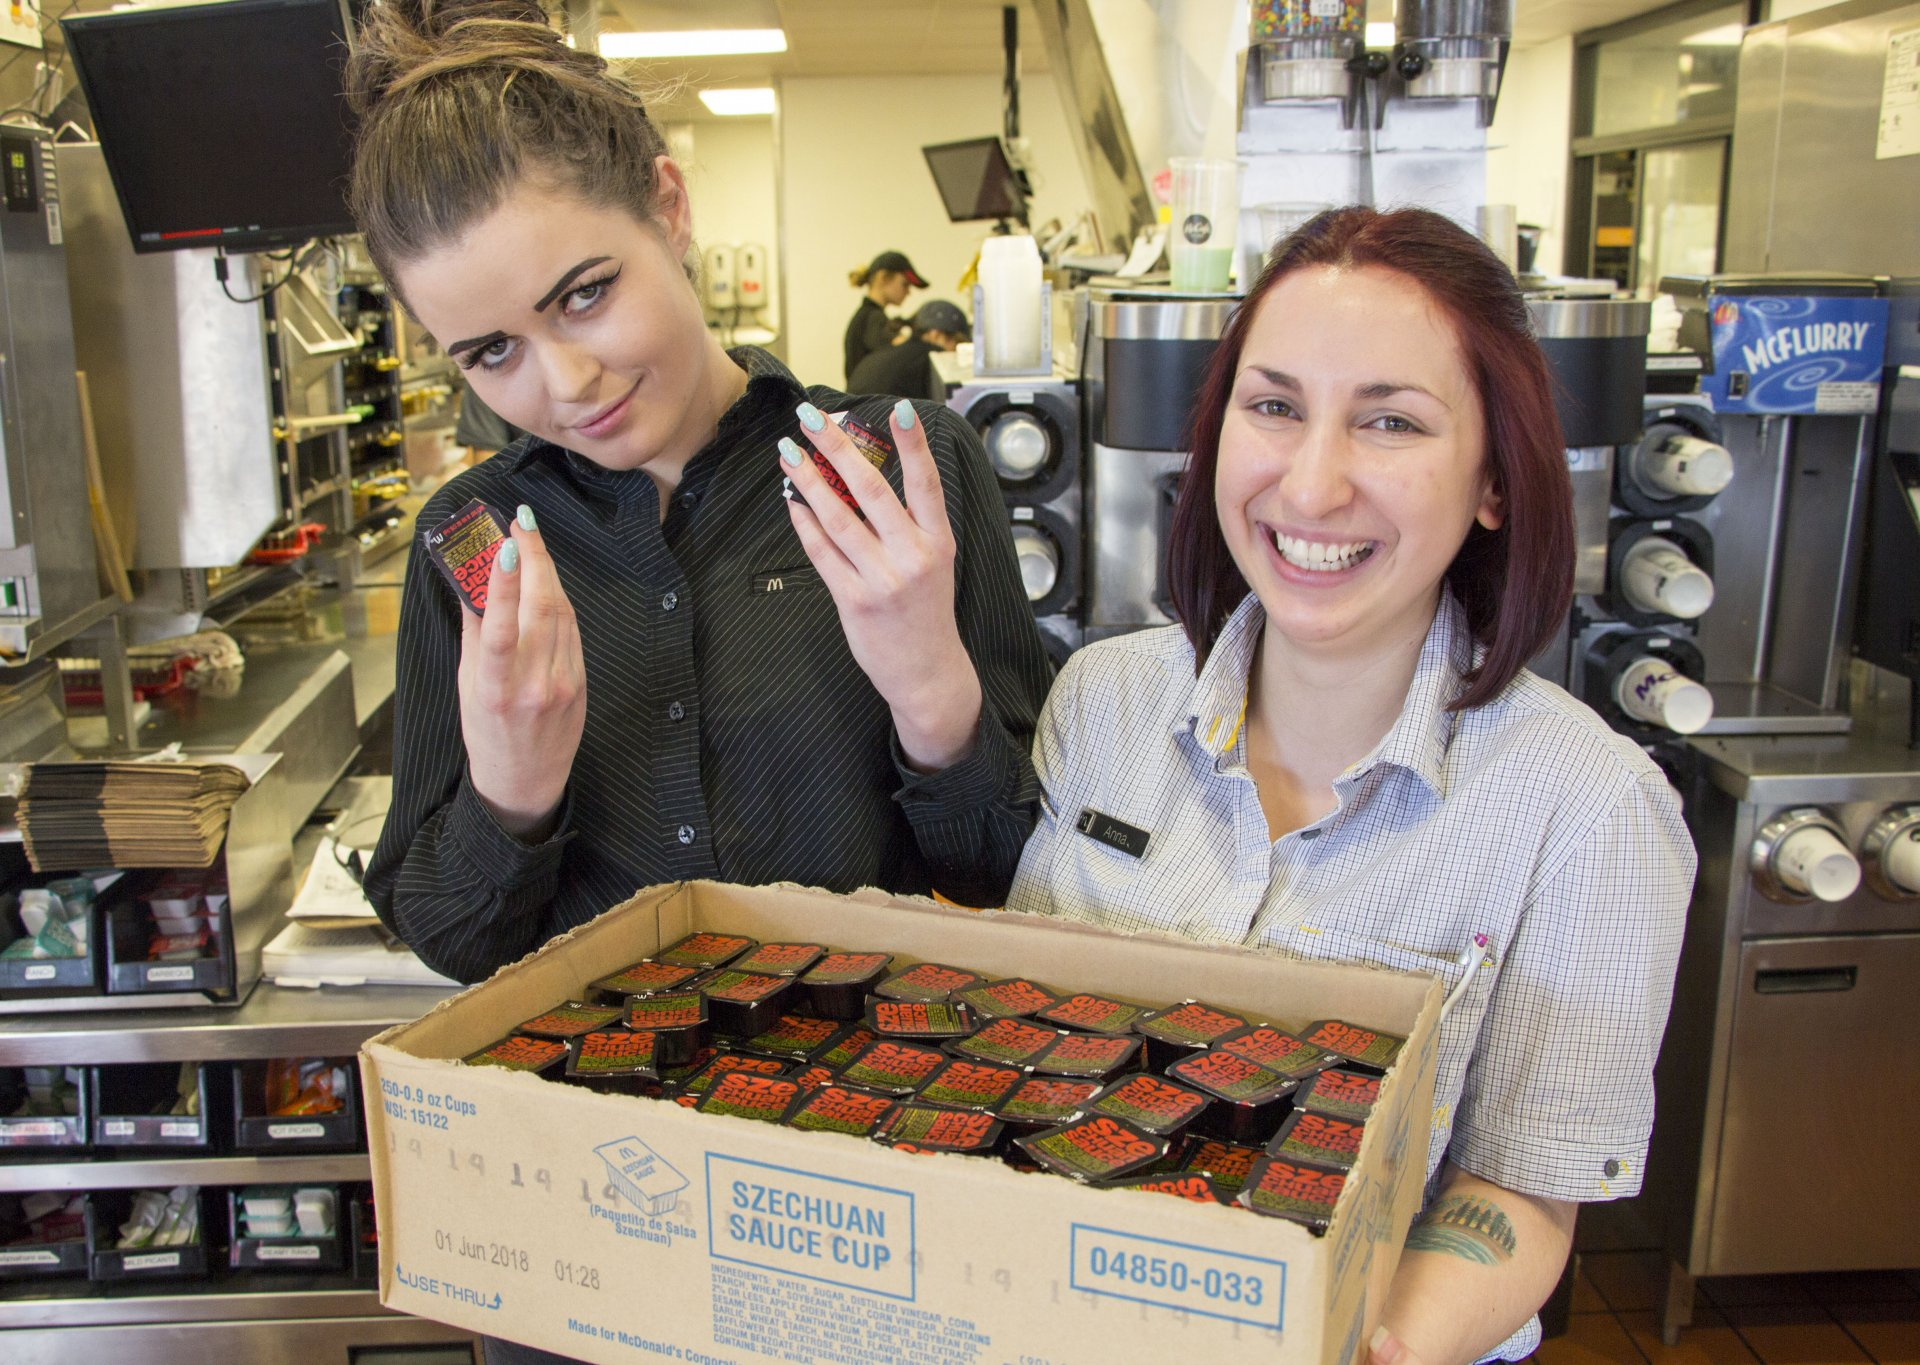 Shift manager Ciana Johnson (left) poses with two cups of Szechuan sauce, as store manager, Anna Lueras, smiles with a box of the sauce on Feb. 24. Photo by Garrett Goodnight.